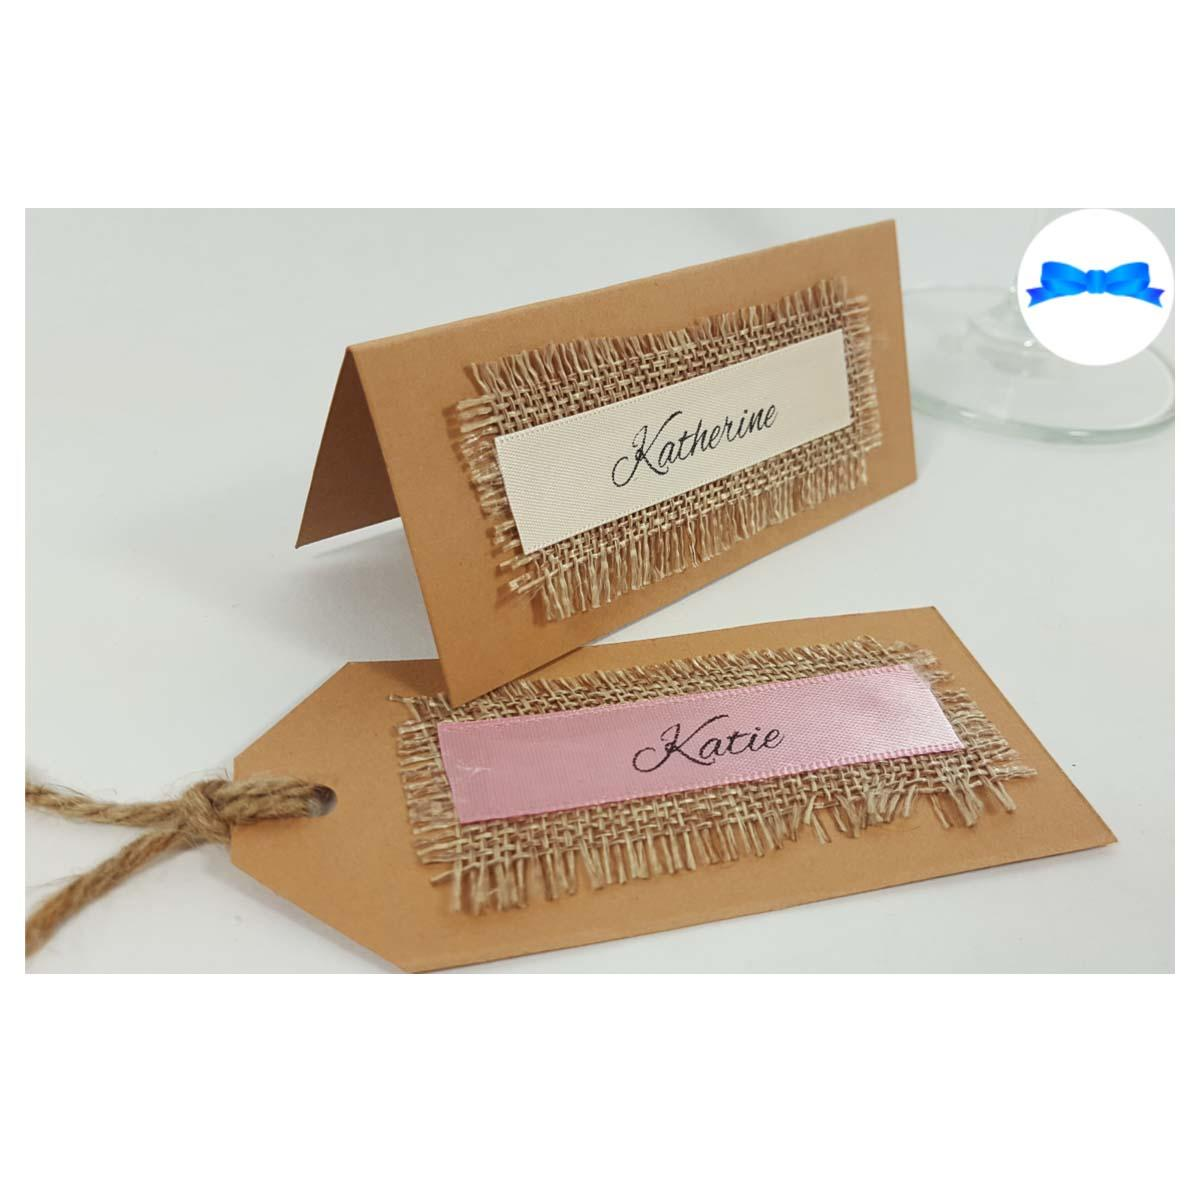 Rustic wedding place cards and tags. Kraft brown card and hessian